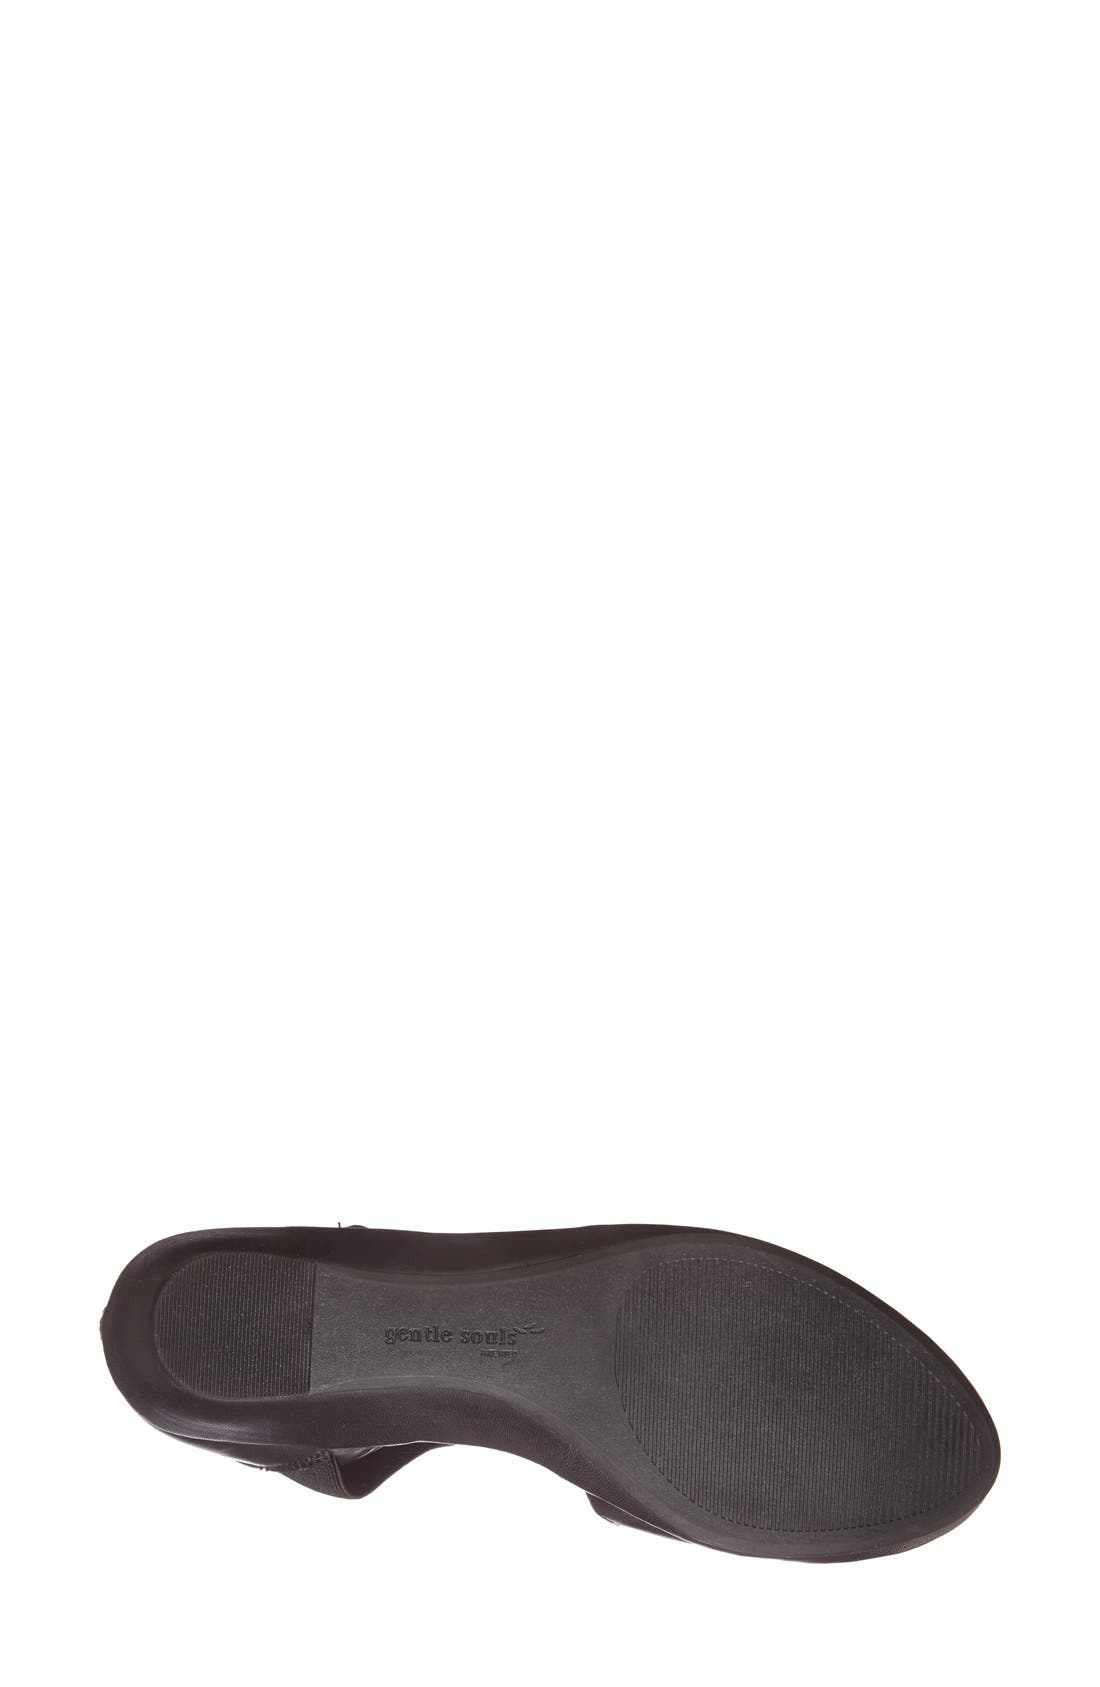 by Kenneth Cole 'Noa' Elastic Strap d'Orsay Sandal,                             Alternate thumbnail 4, color,                             BLACK